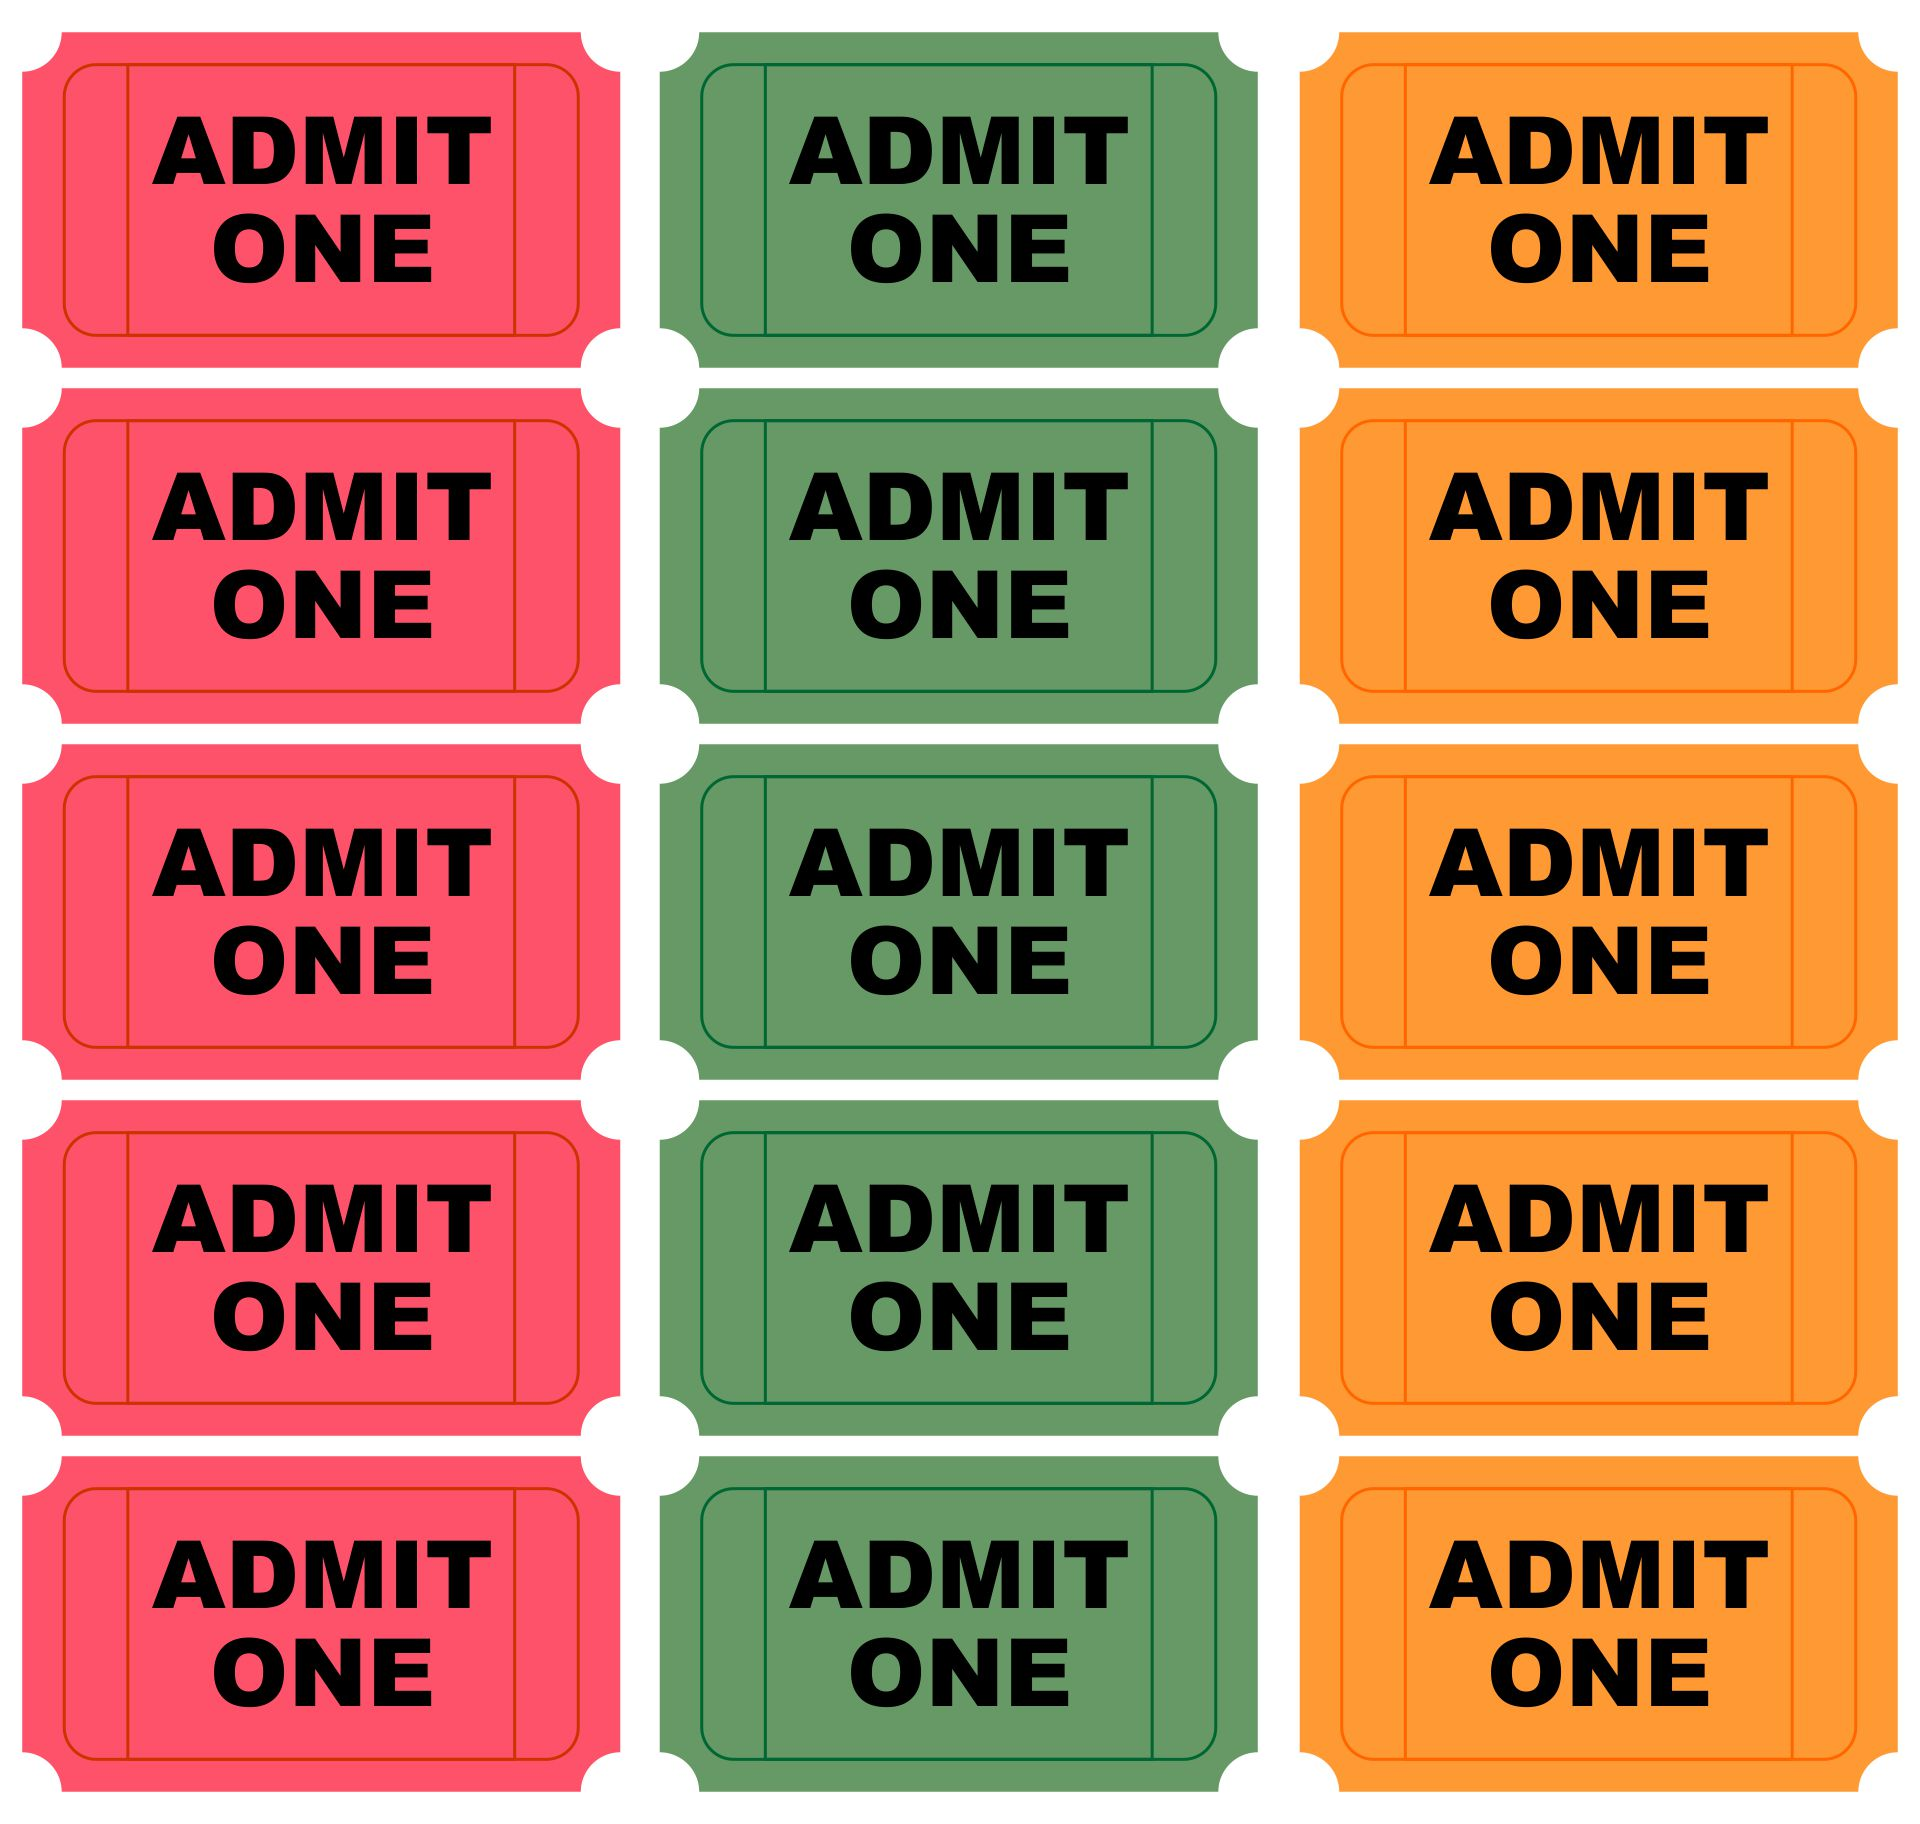 Free Printable Admit One Ticket Templates